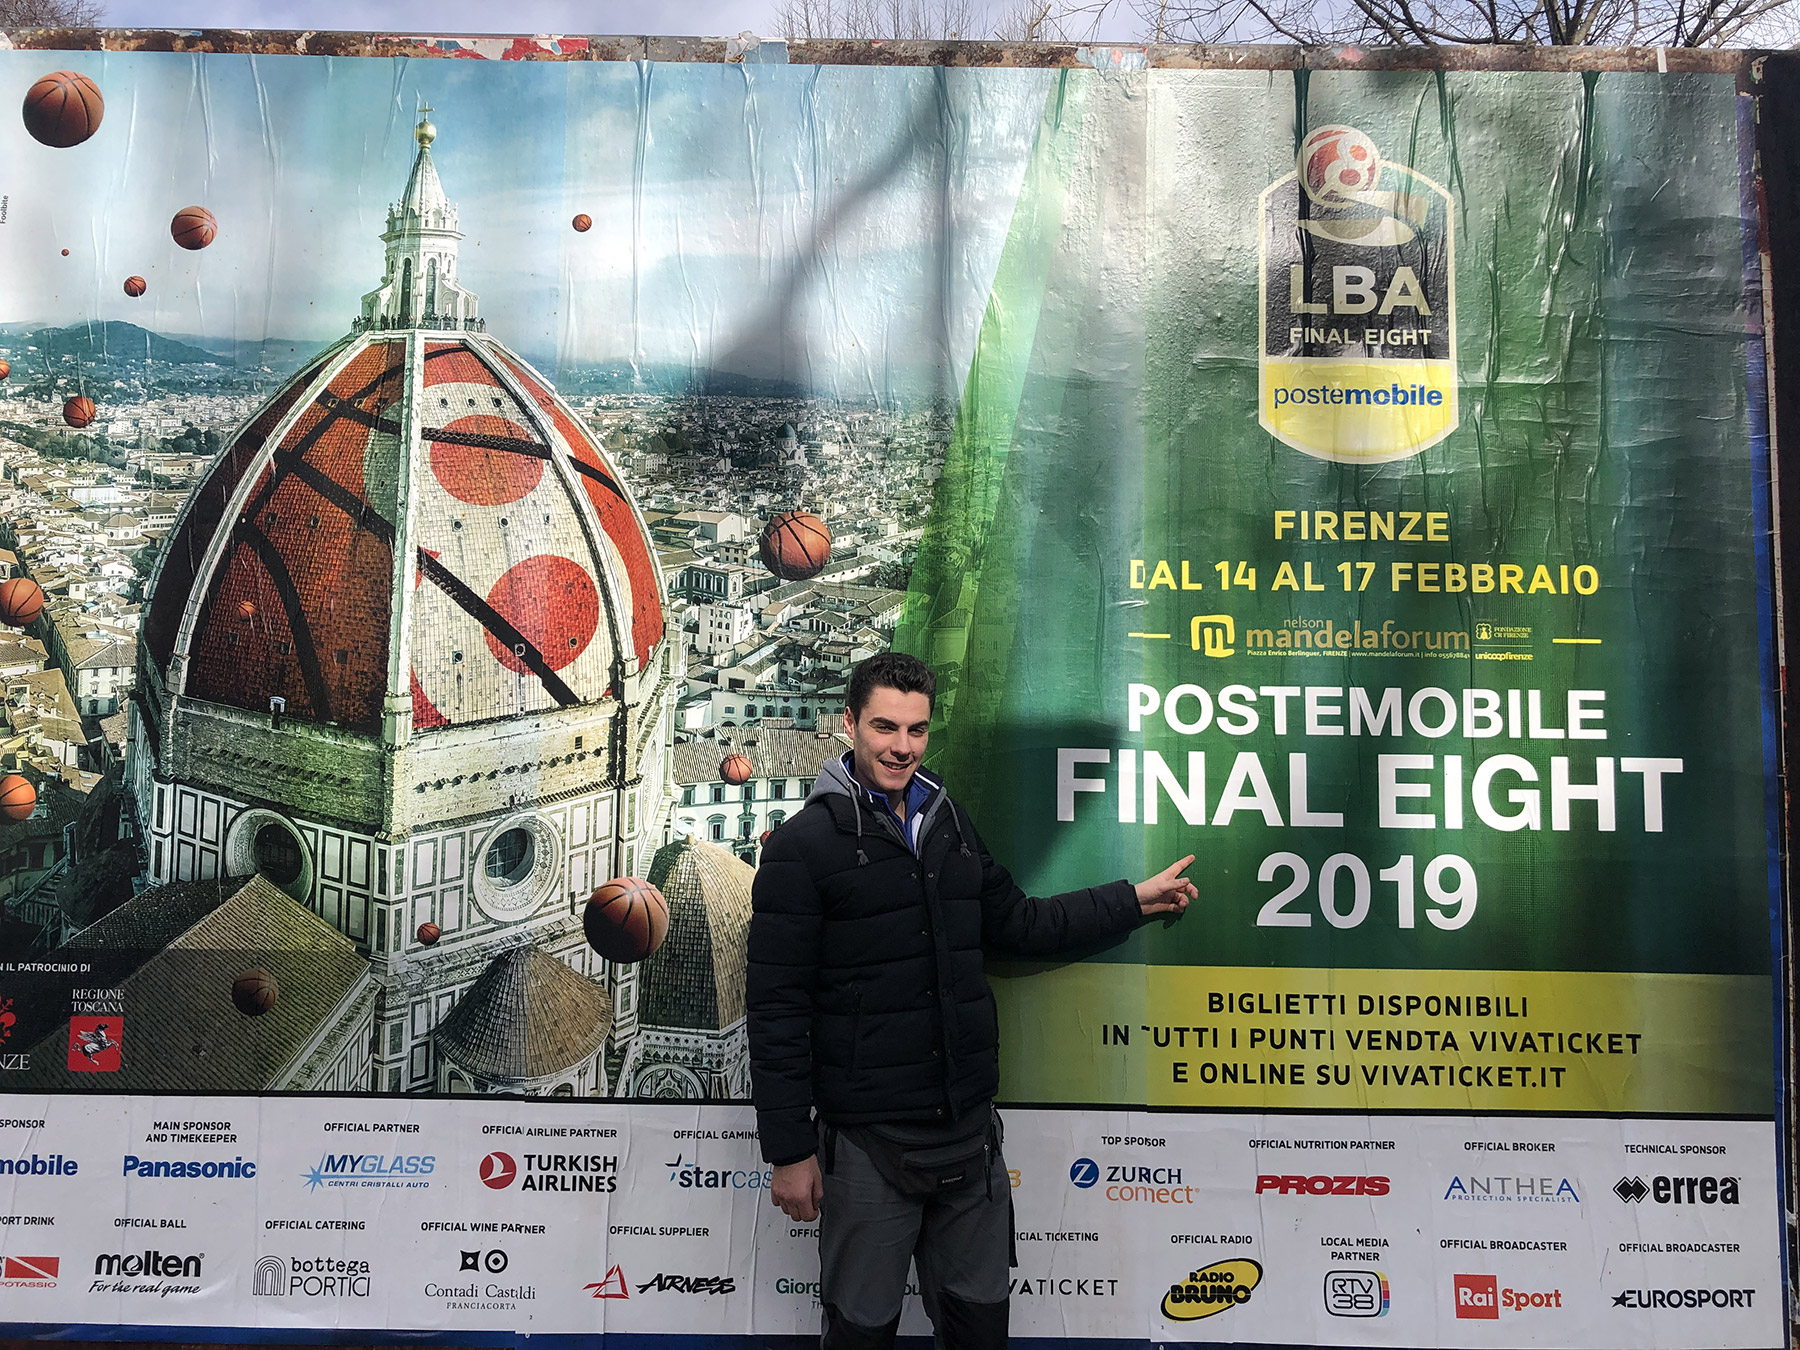 Marco Dalla Riva, one of our technicians, in front of the Lega billboard